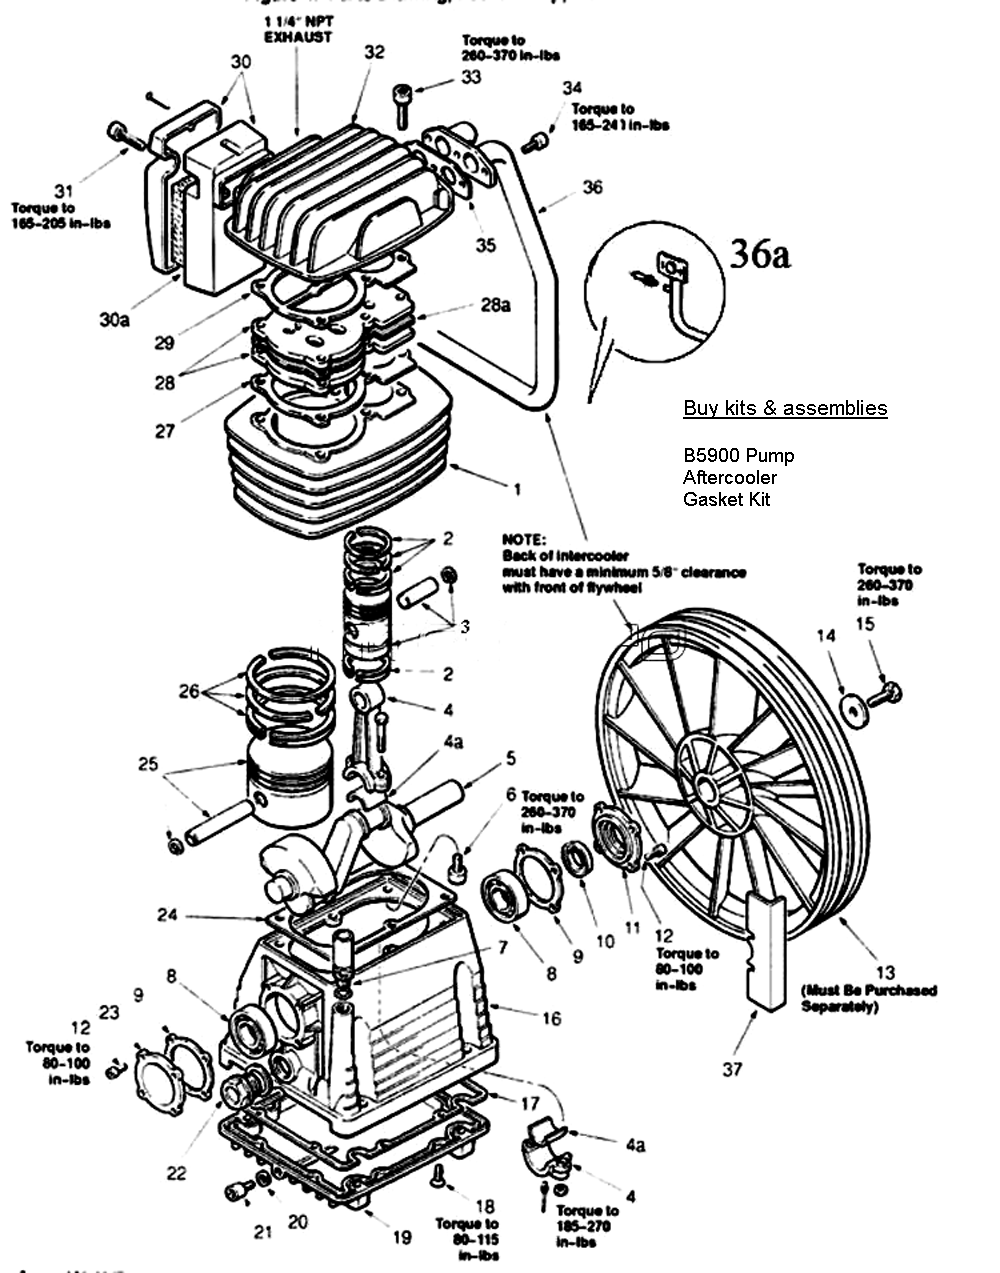 [MNL-1641] Ingersoll Rand Air Compressor Parts Manual 4000